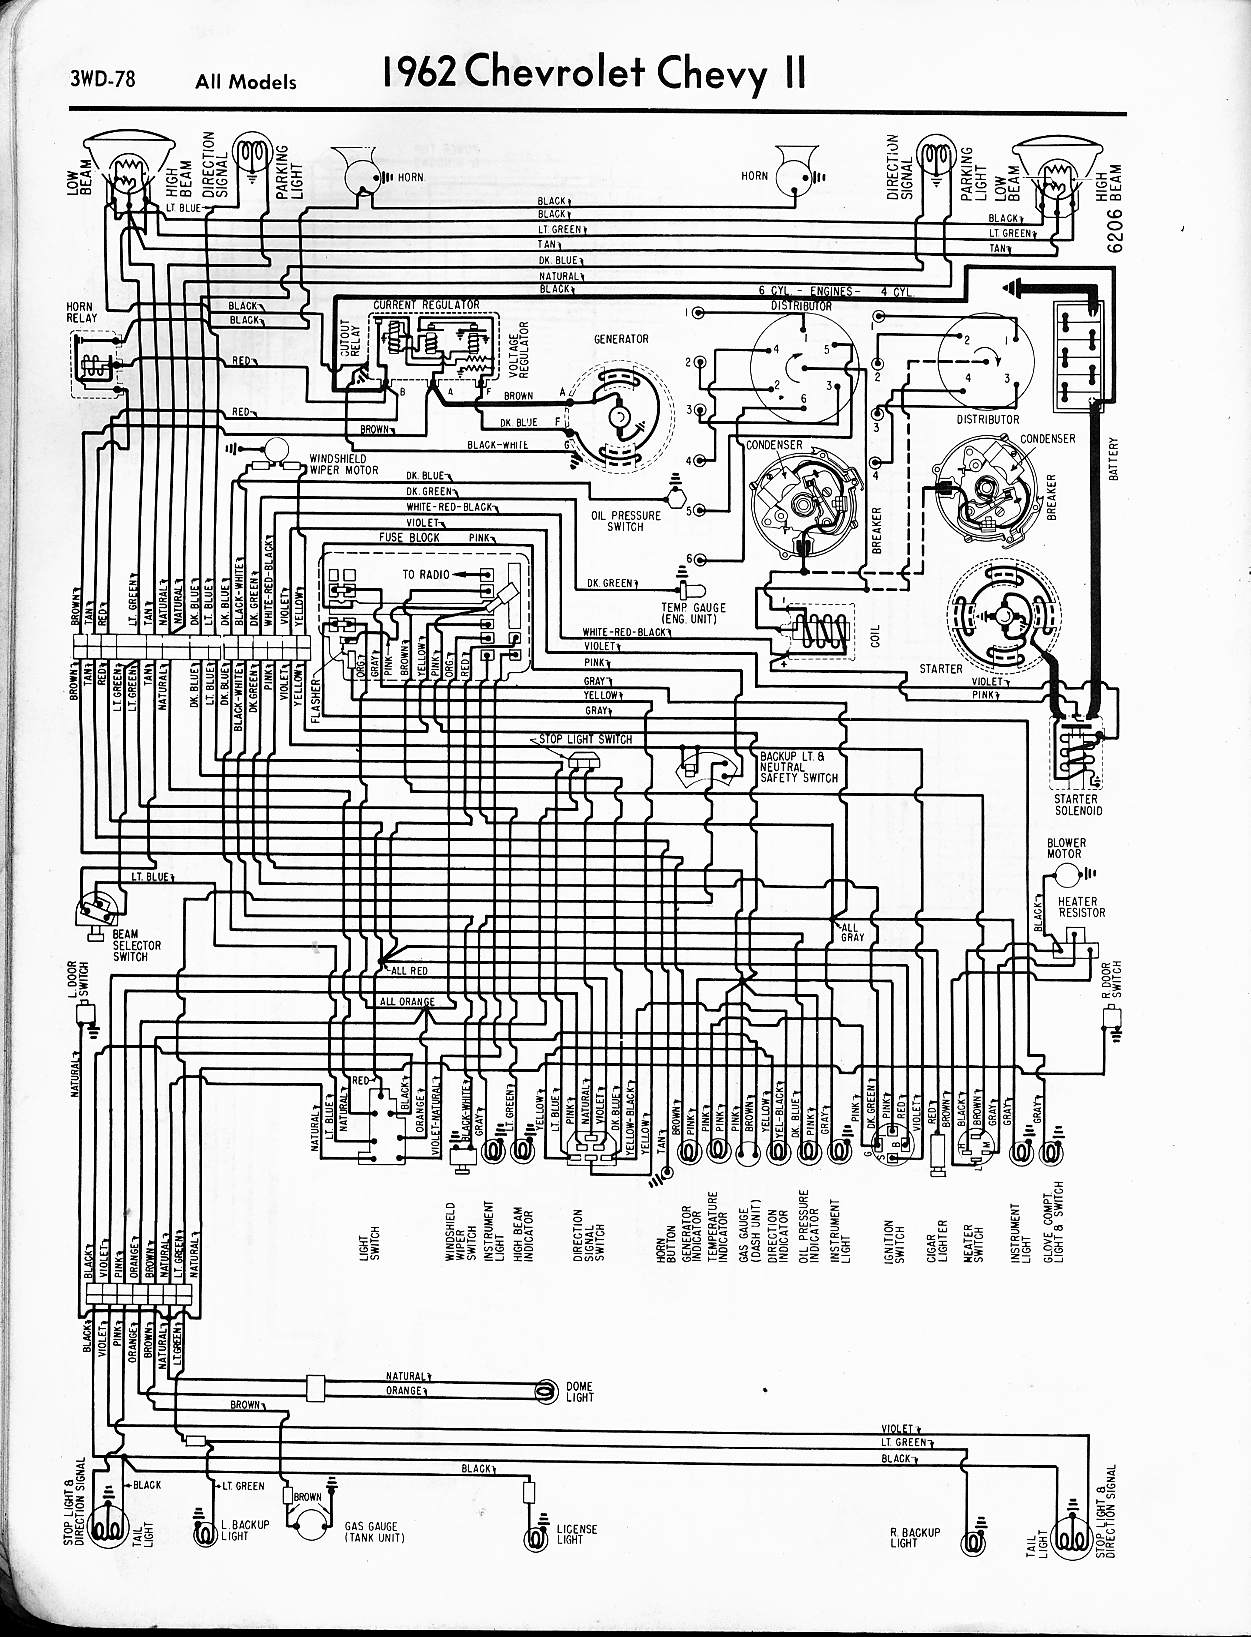 MWireChev62_3WD 078 1963 c10 pickup wiring diagram pdf chevy wiring diagrams \u2022 free 67 Chevy 2 Nova at eliteediting.co